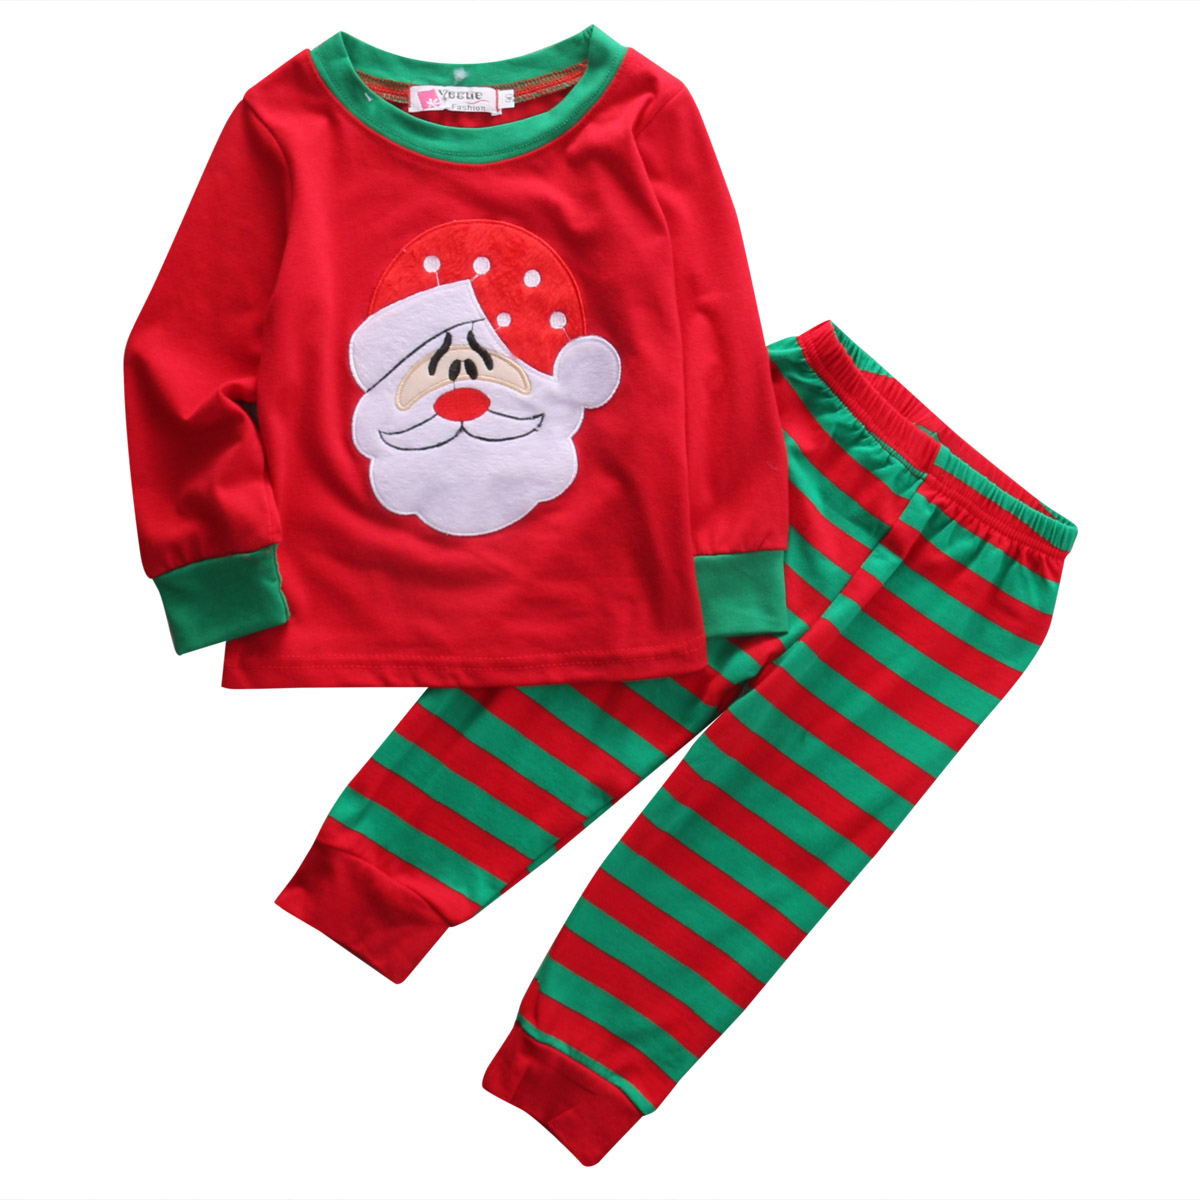 f429b4cf 2Pcs Baby Kids Christmas Pjs Clothing Set Baby Boys Girls Xmas T-Shirt Tops  + Pants Kids Toddler Clothes Outfit